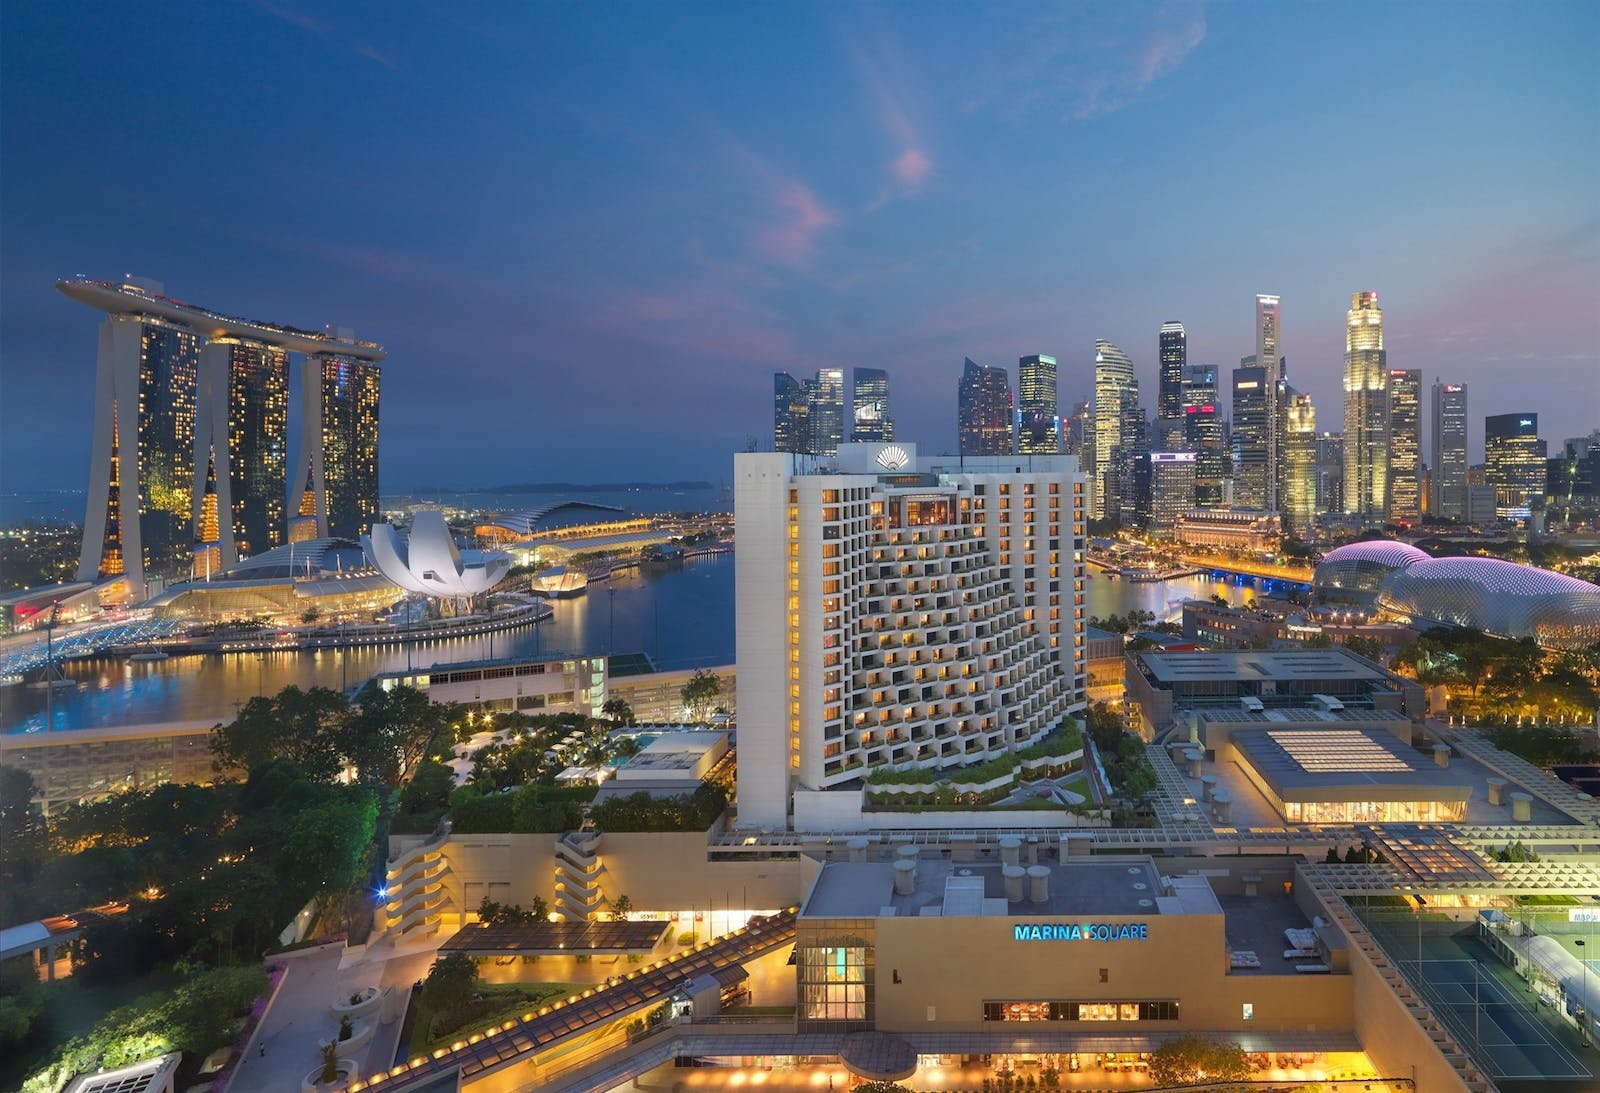 Aerial view of Mandarin Oriental, Singapore, Asia